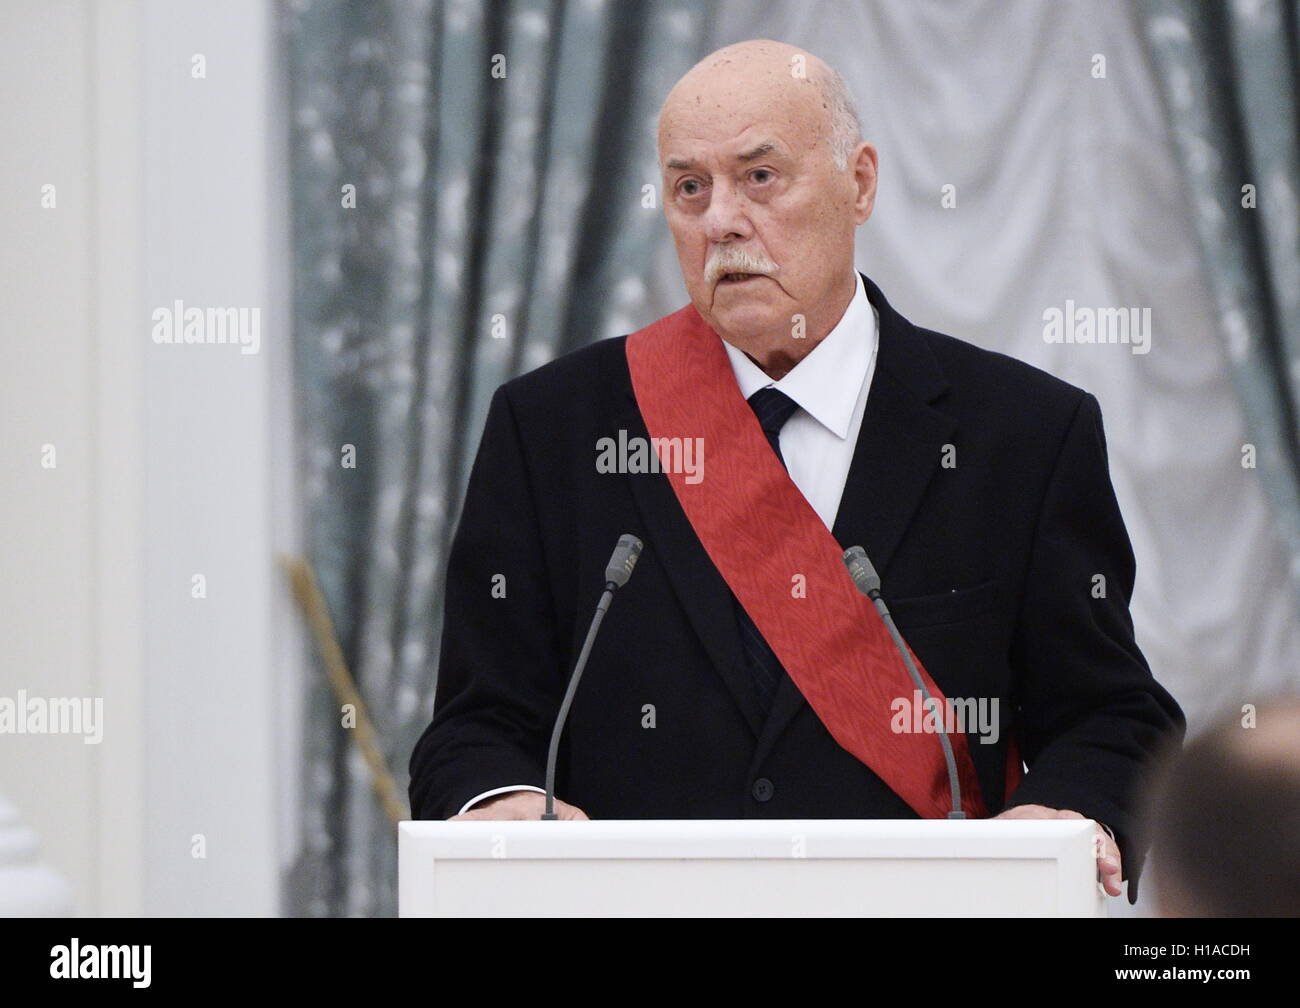 Director Stanislav Govorukhin called the word Russian disgusting 11/17/2016 10